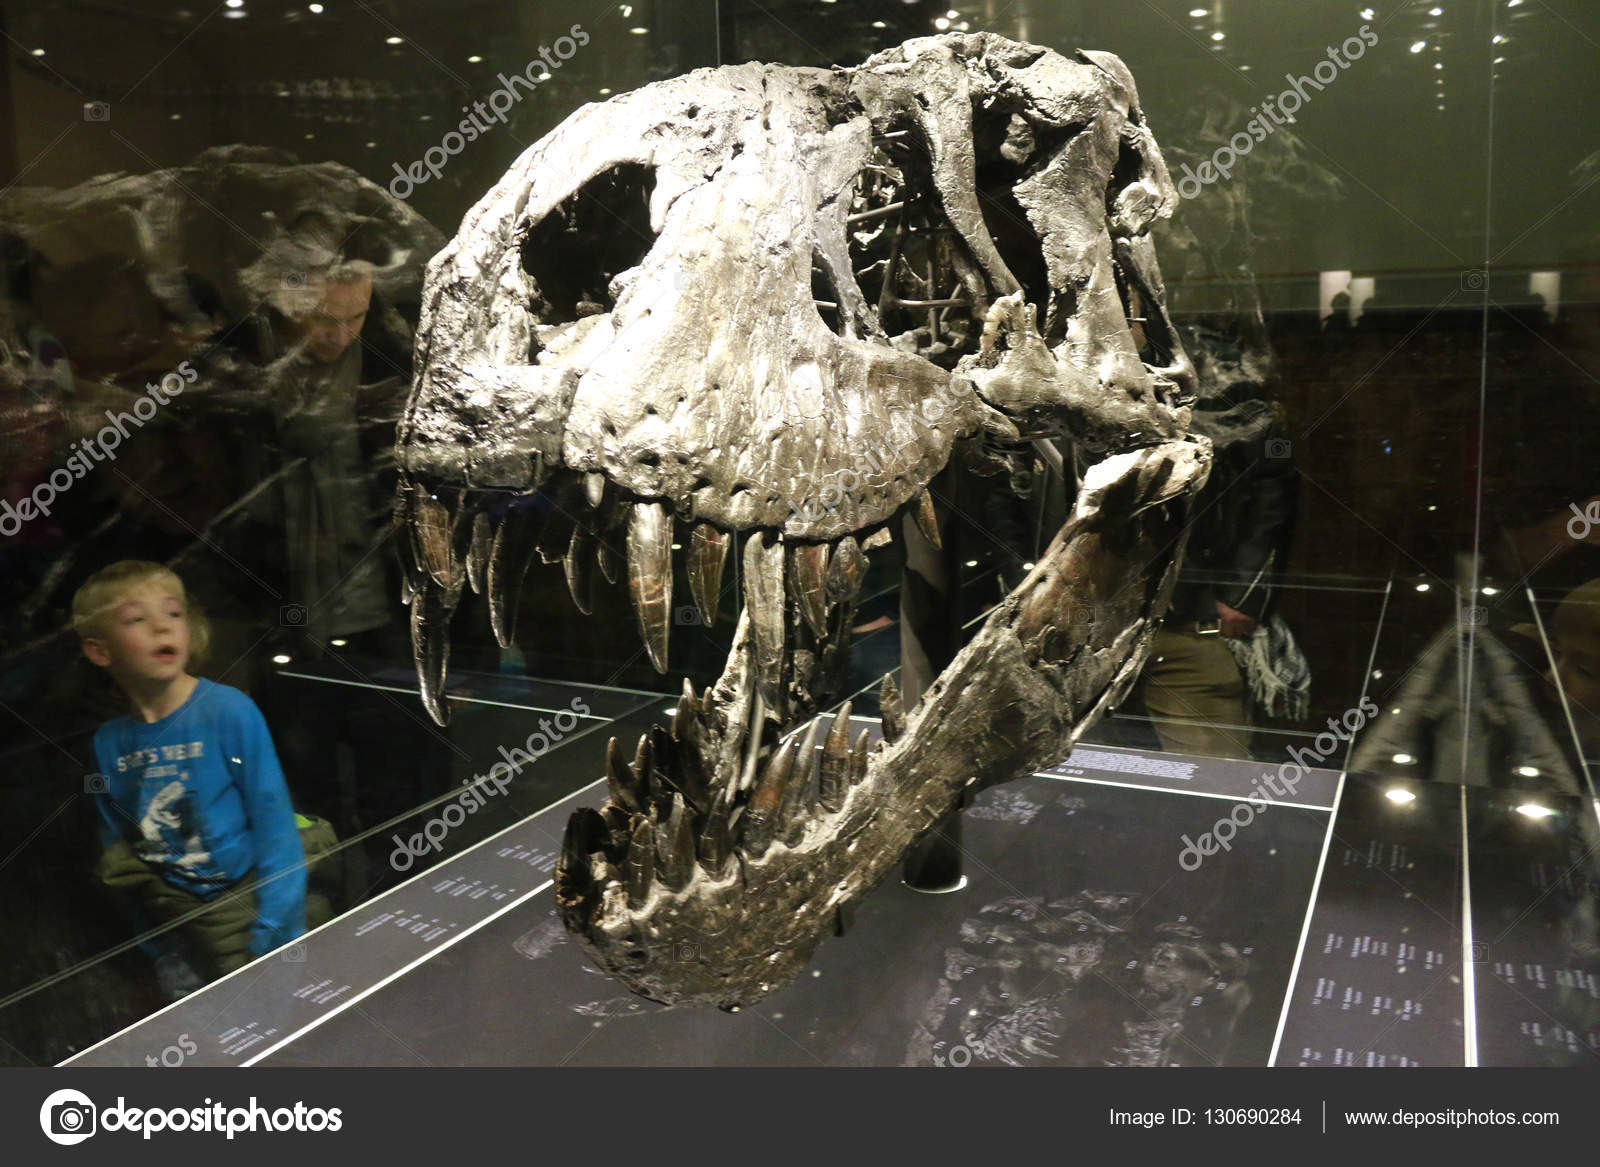 Skeleton of the tyrannus saurus rex tristan otto stock editorial december 2015 berlin the skeleton of the tyrannus saurus rex tristan otto on display at the museum of natural history berlin photo by 360ber thecheapjerseys